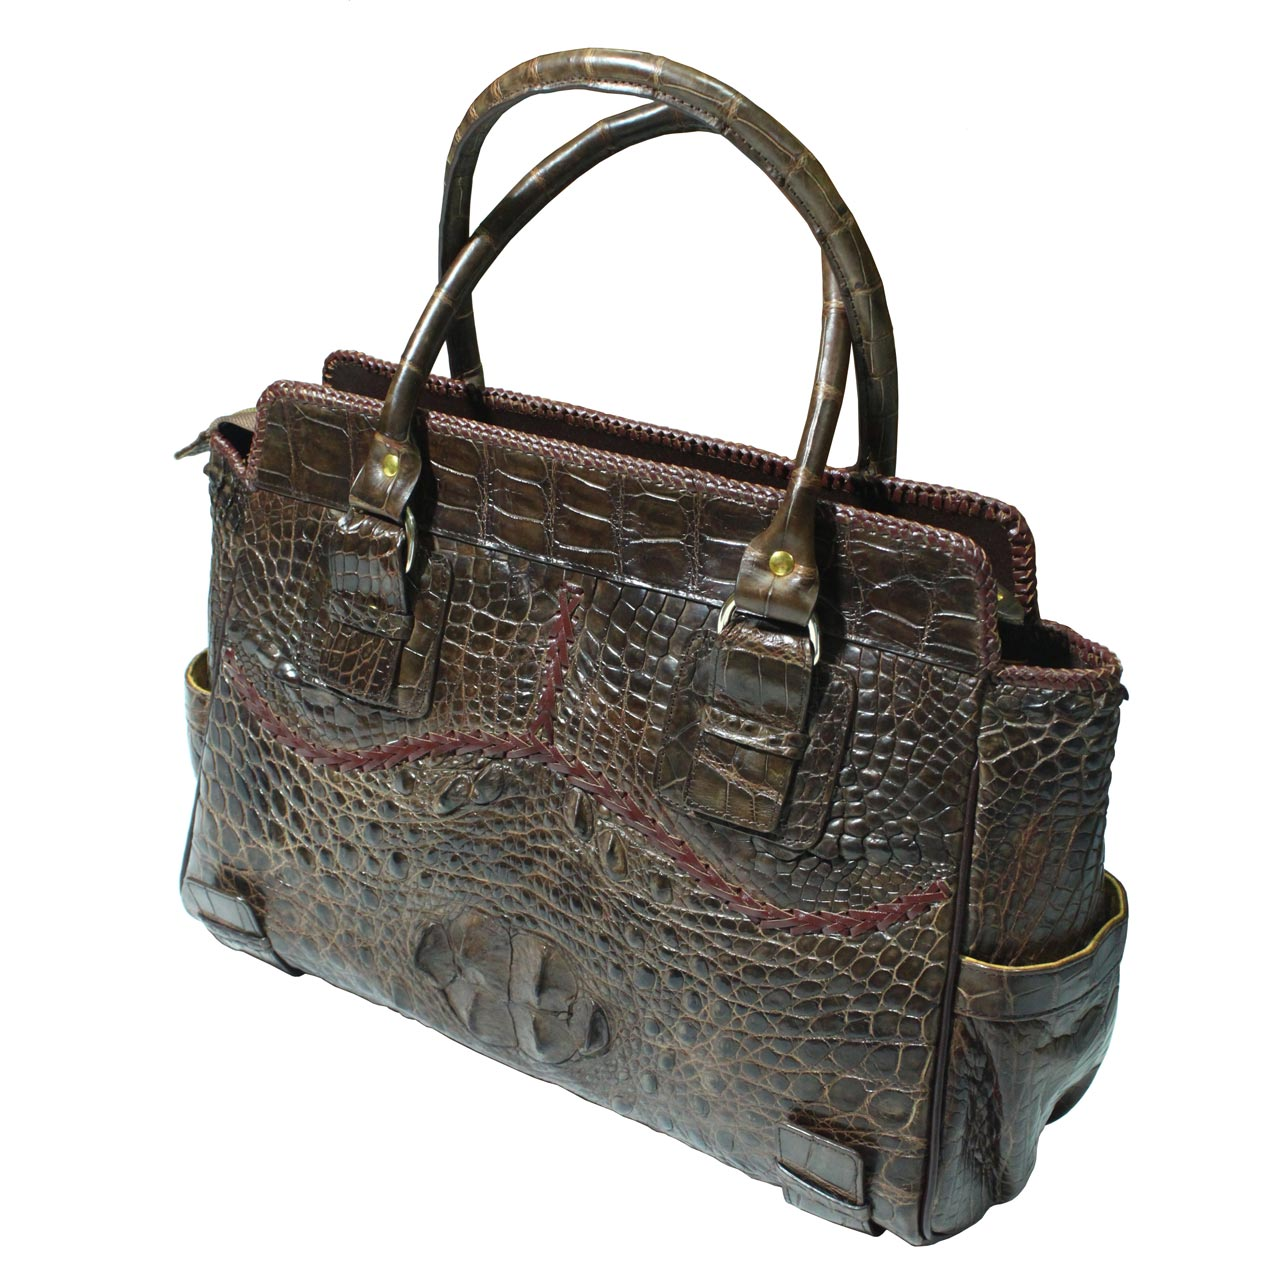 Crocodile Leather Handbag S022a